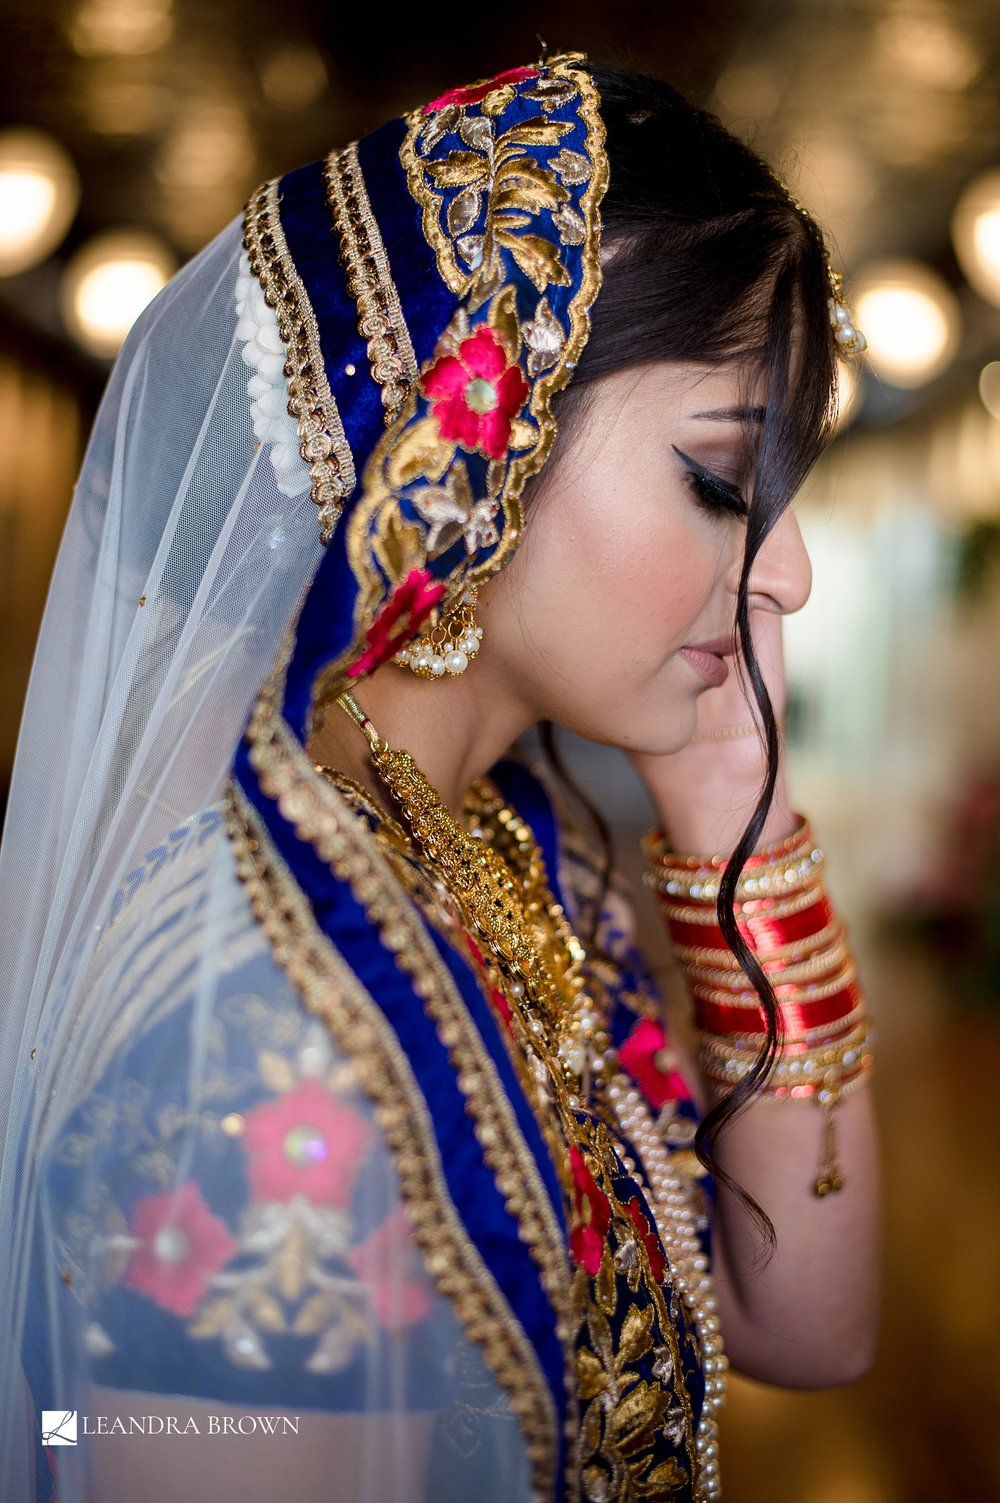 2019-03-21_0073.jpgSouth Asian Wedding Photography.LeandraBrownPhotography_